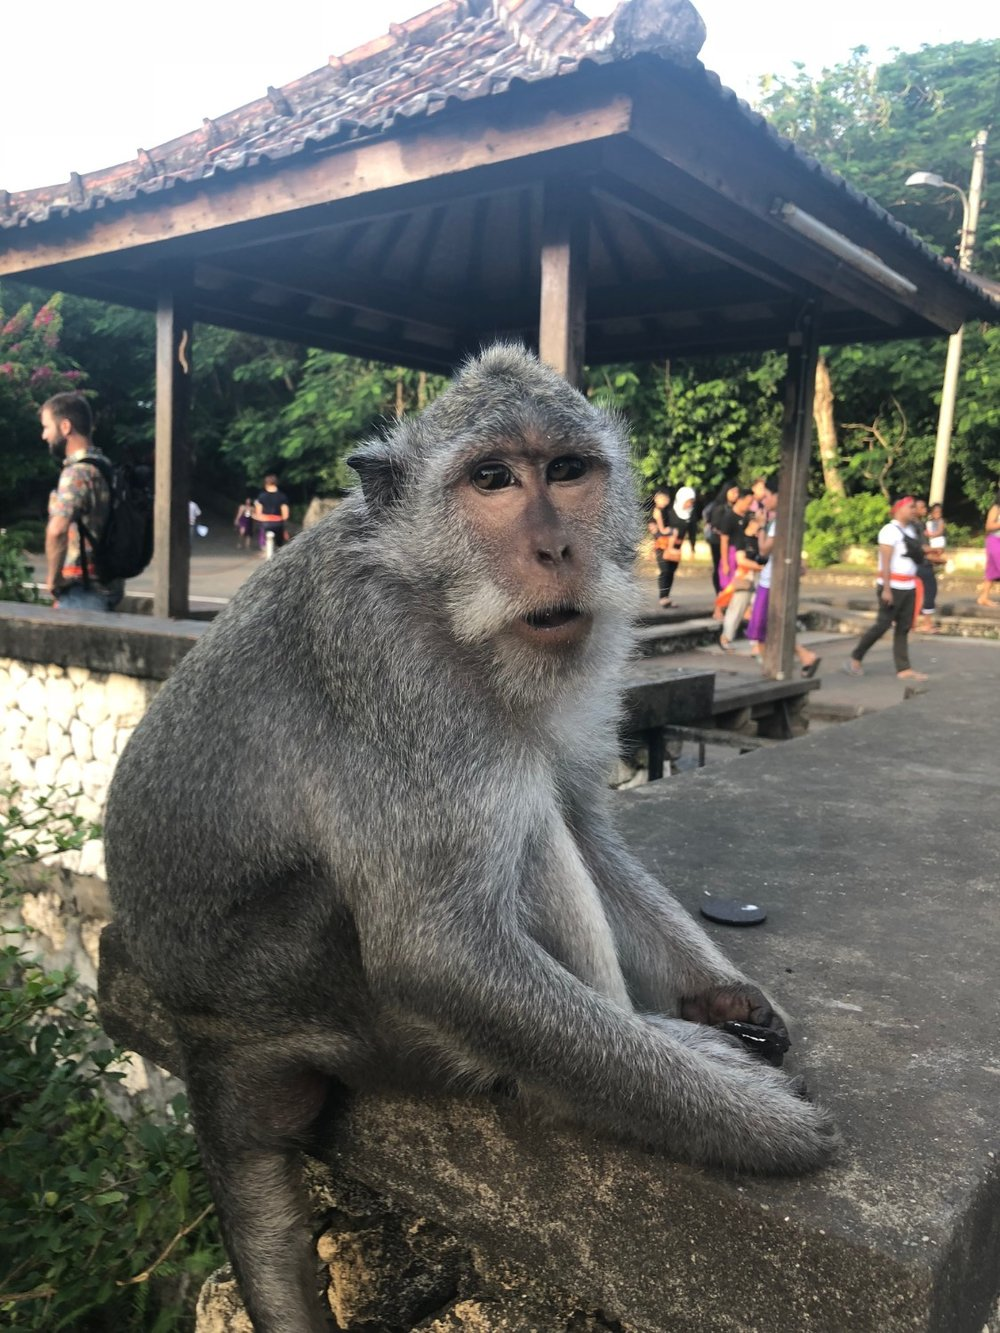 Monkey at the Uluwatu Temple, Bali. Boldlygotravel.com